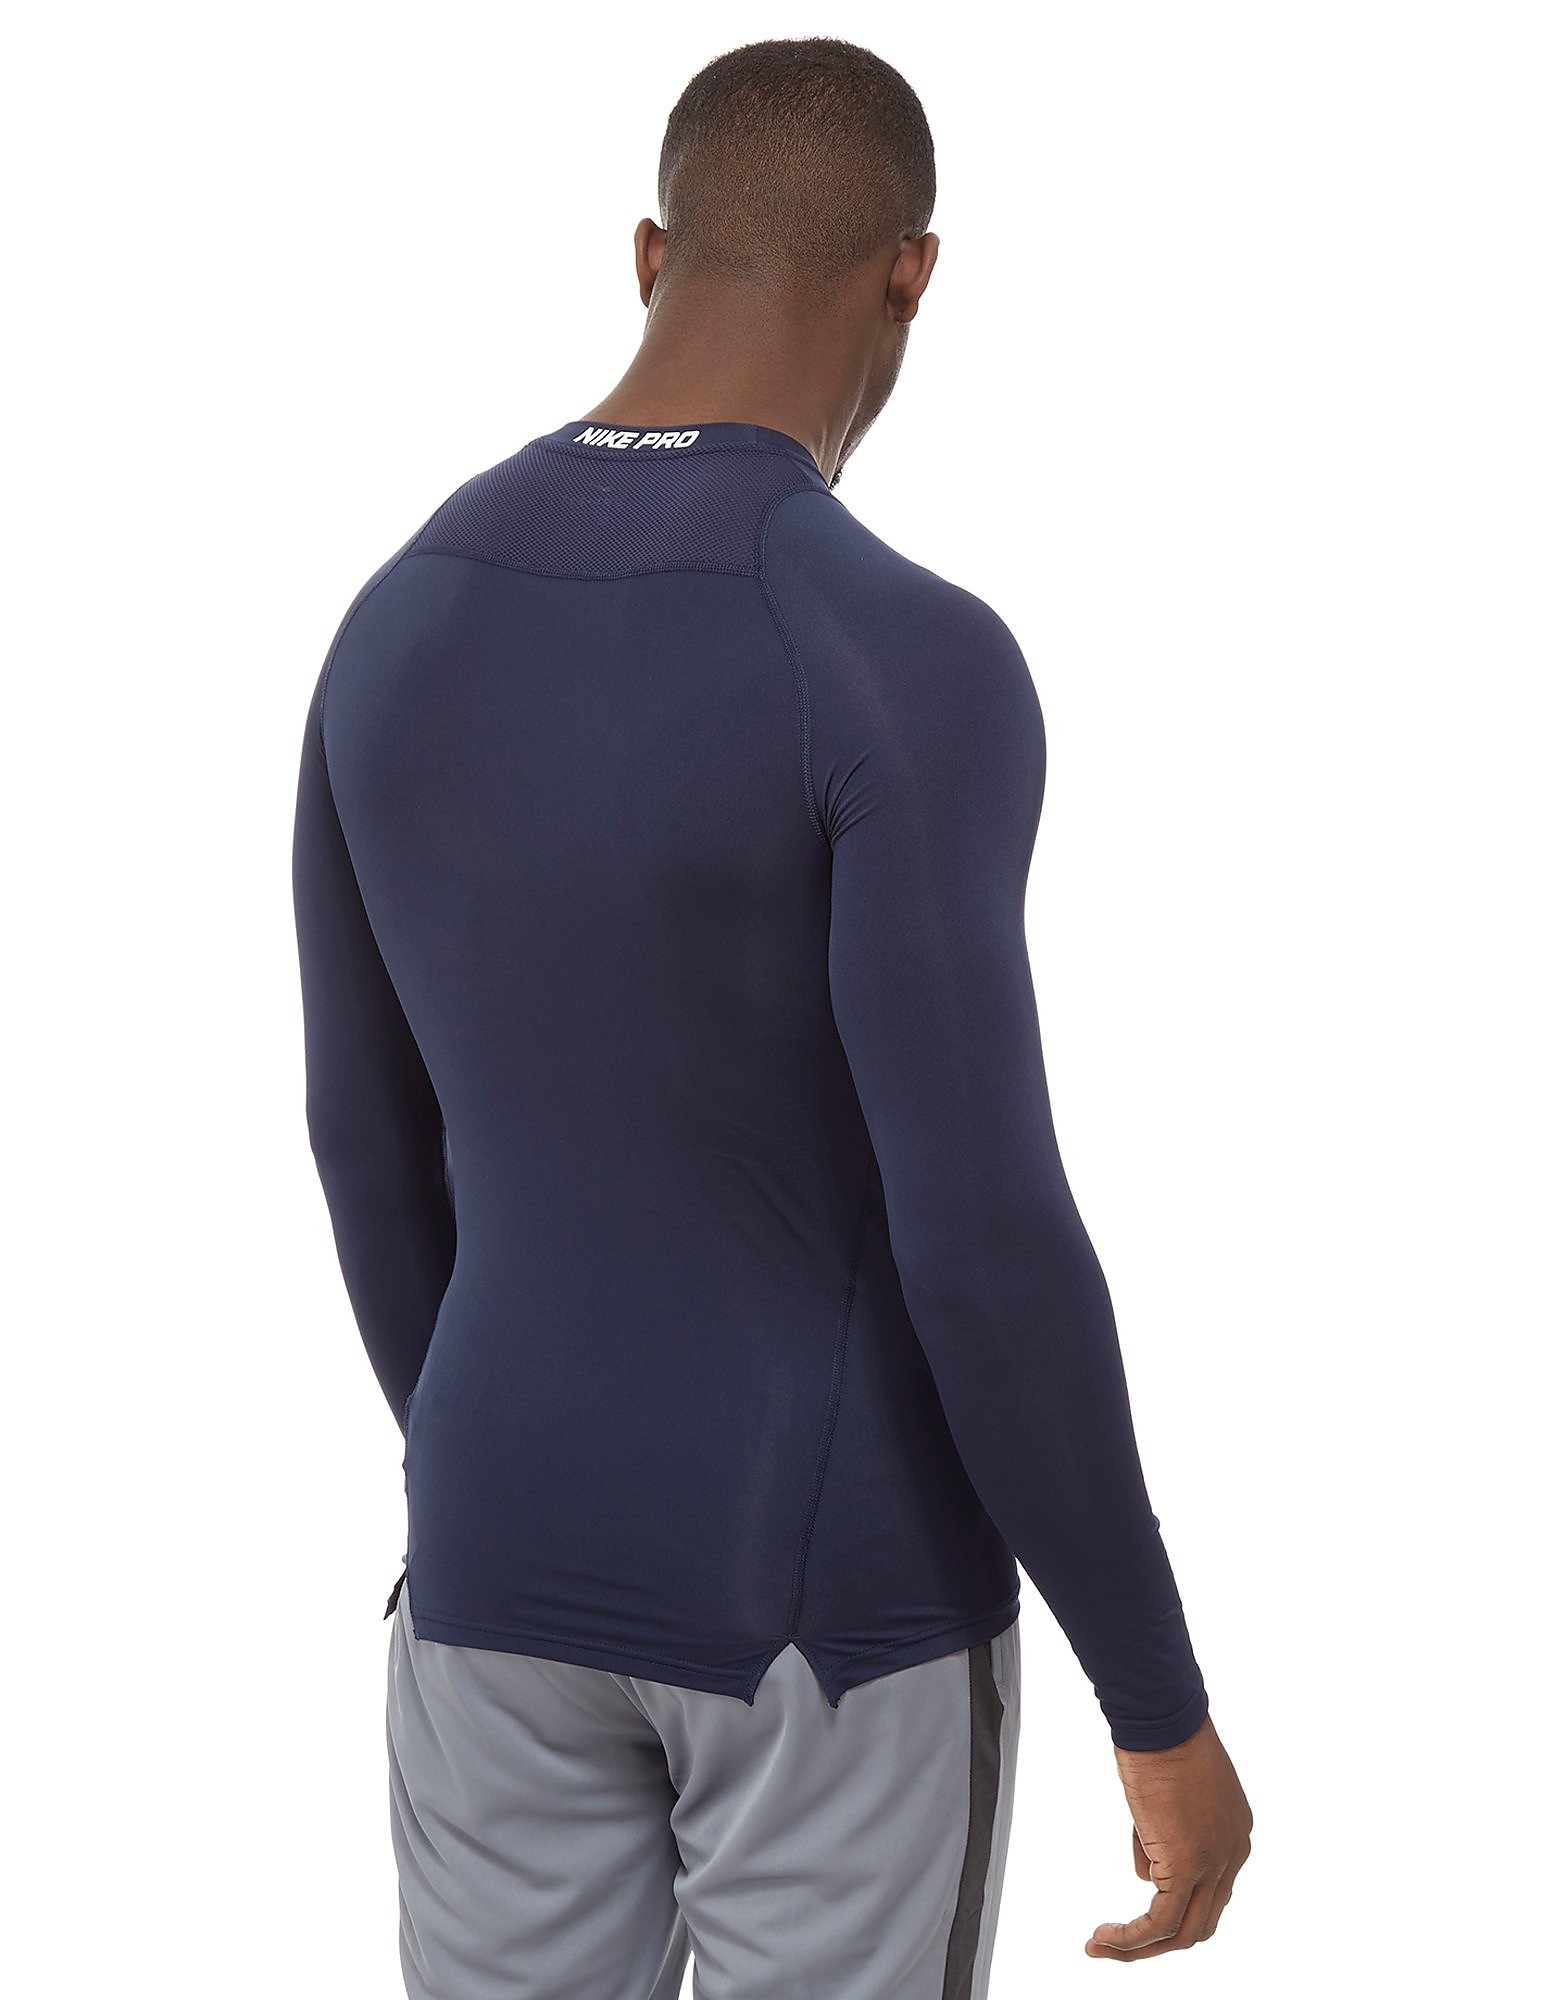 Nike Men's Pro Compression Long Sleeve Top